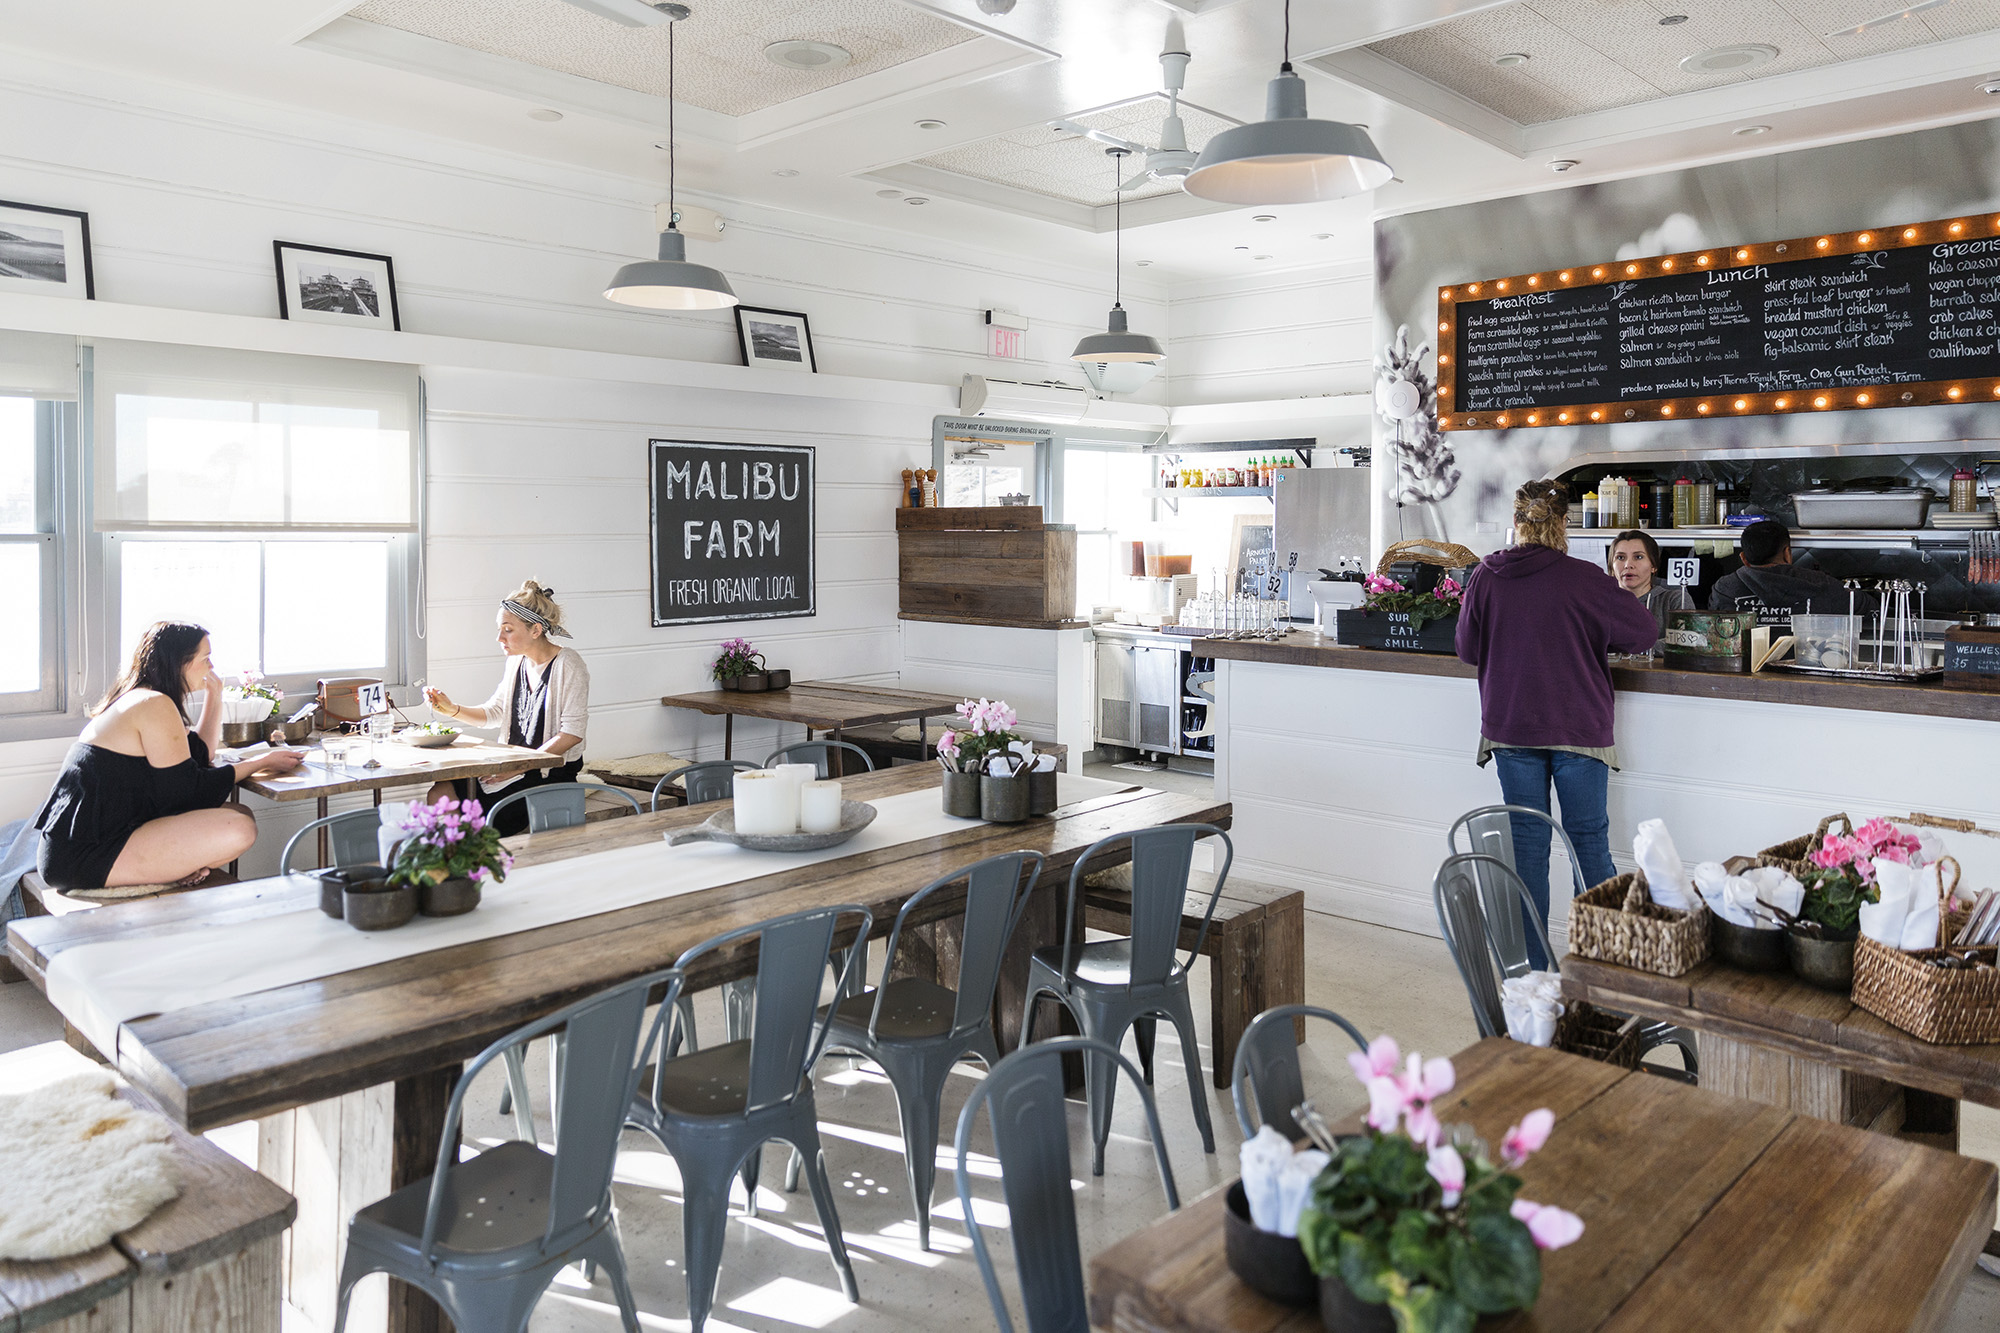 Malibu Farm Restaurant by Rebecca Stumpf Colorado Denver Boulder Editorial and Commercial Lifesttyle Food Travel Photographer